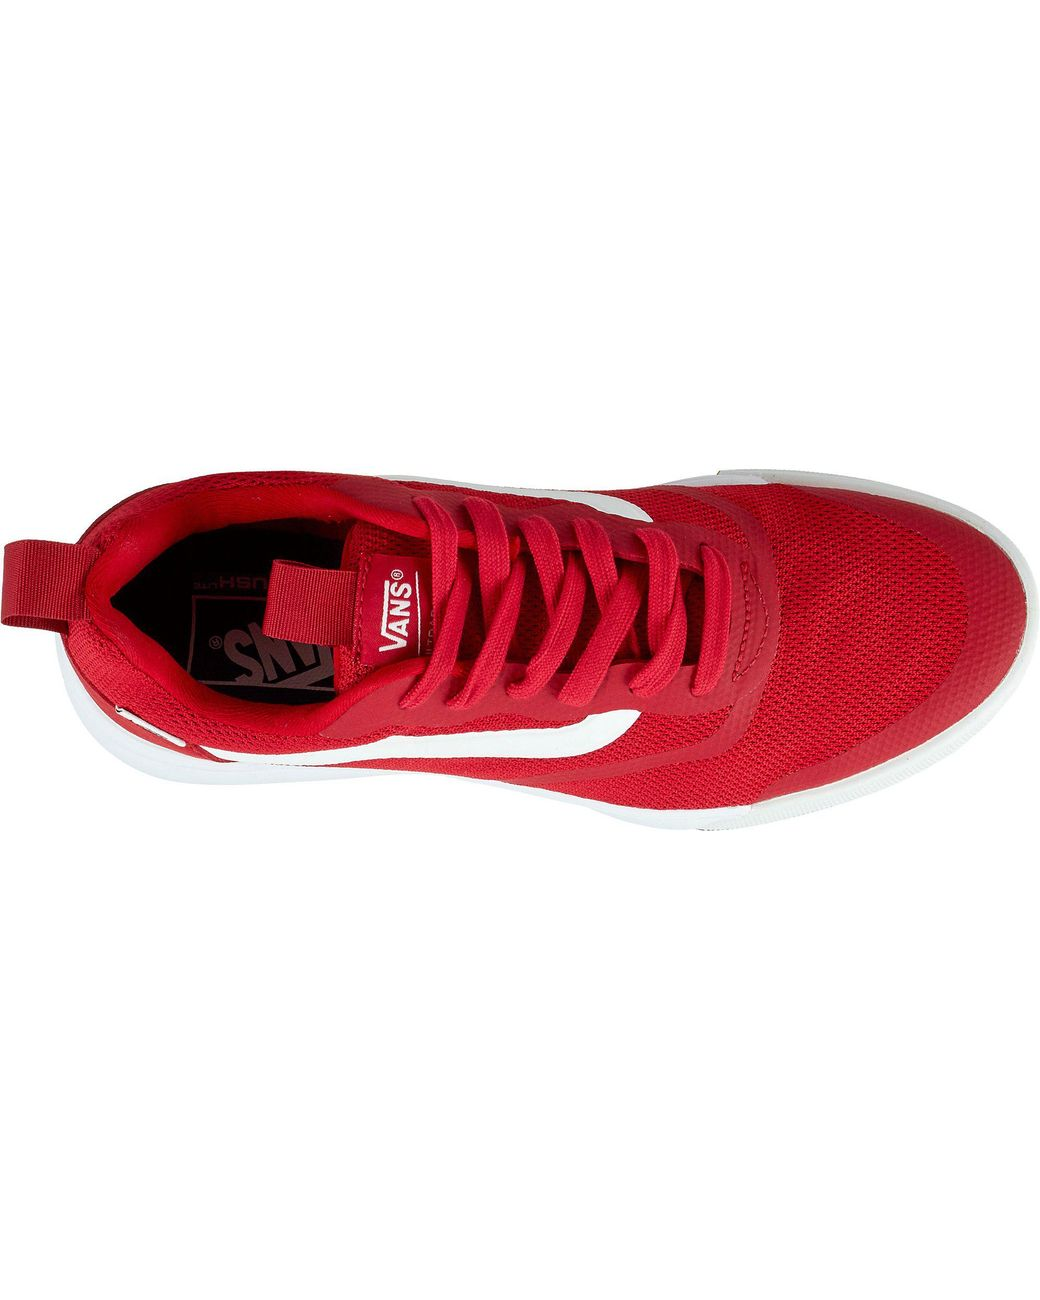 a84d3cd5f15002 Lyst - Vans Ultrarange Rapidweld Shoes in Red for Men - Save 25%